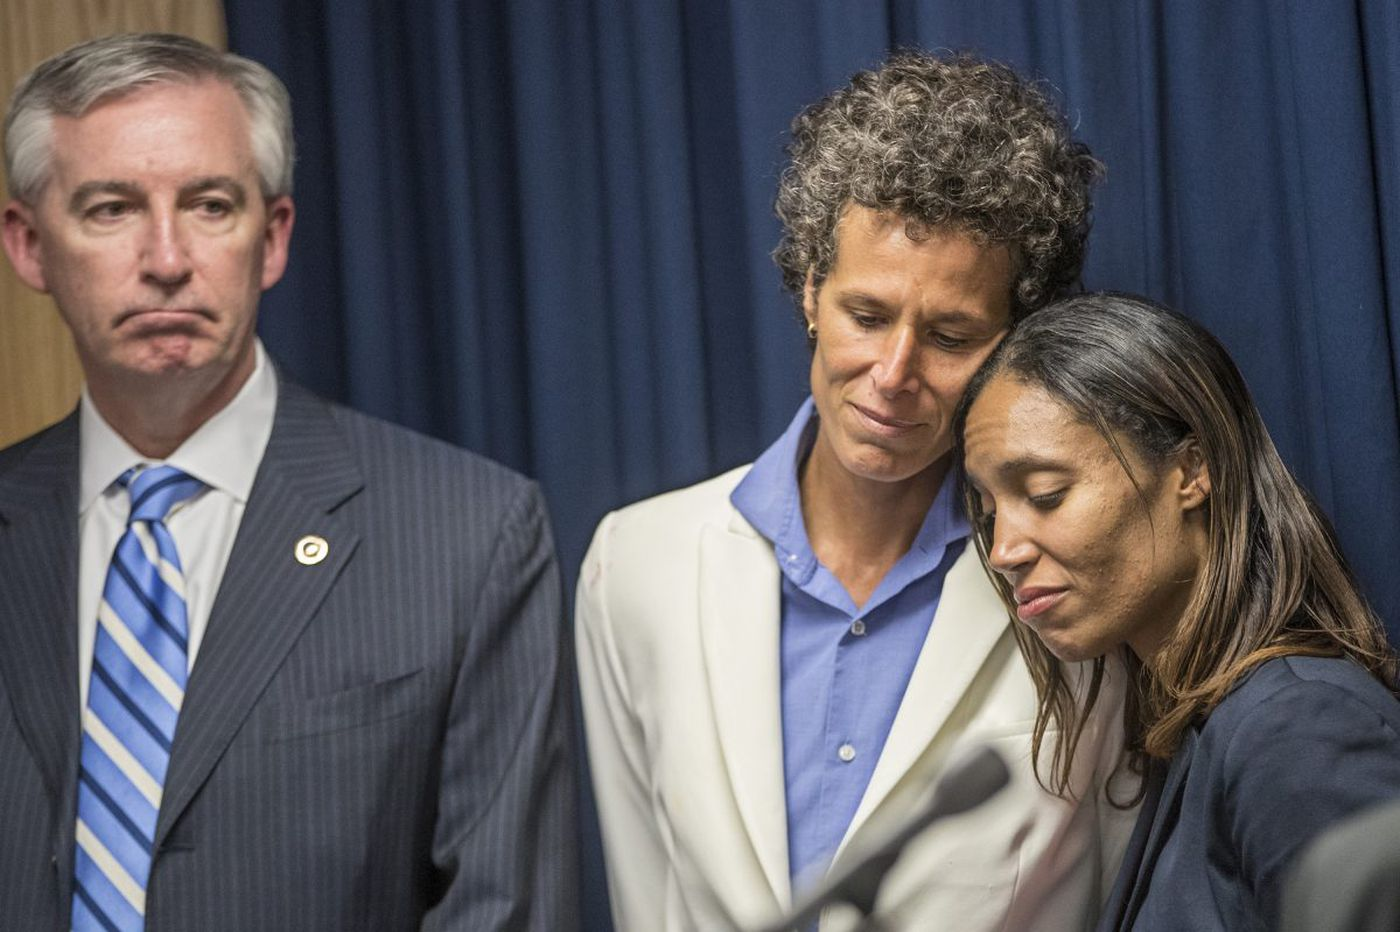 Andrea Constand on Bill Cosby guilty verdict: 'Truth prevails'